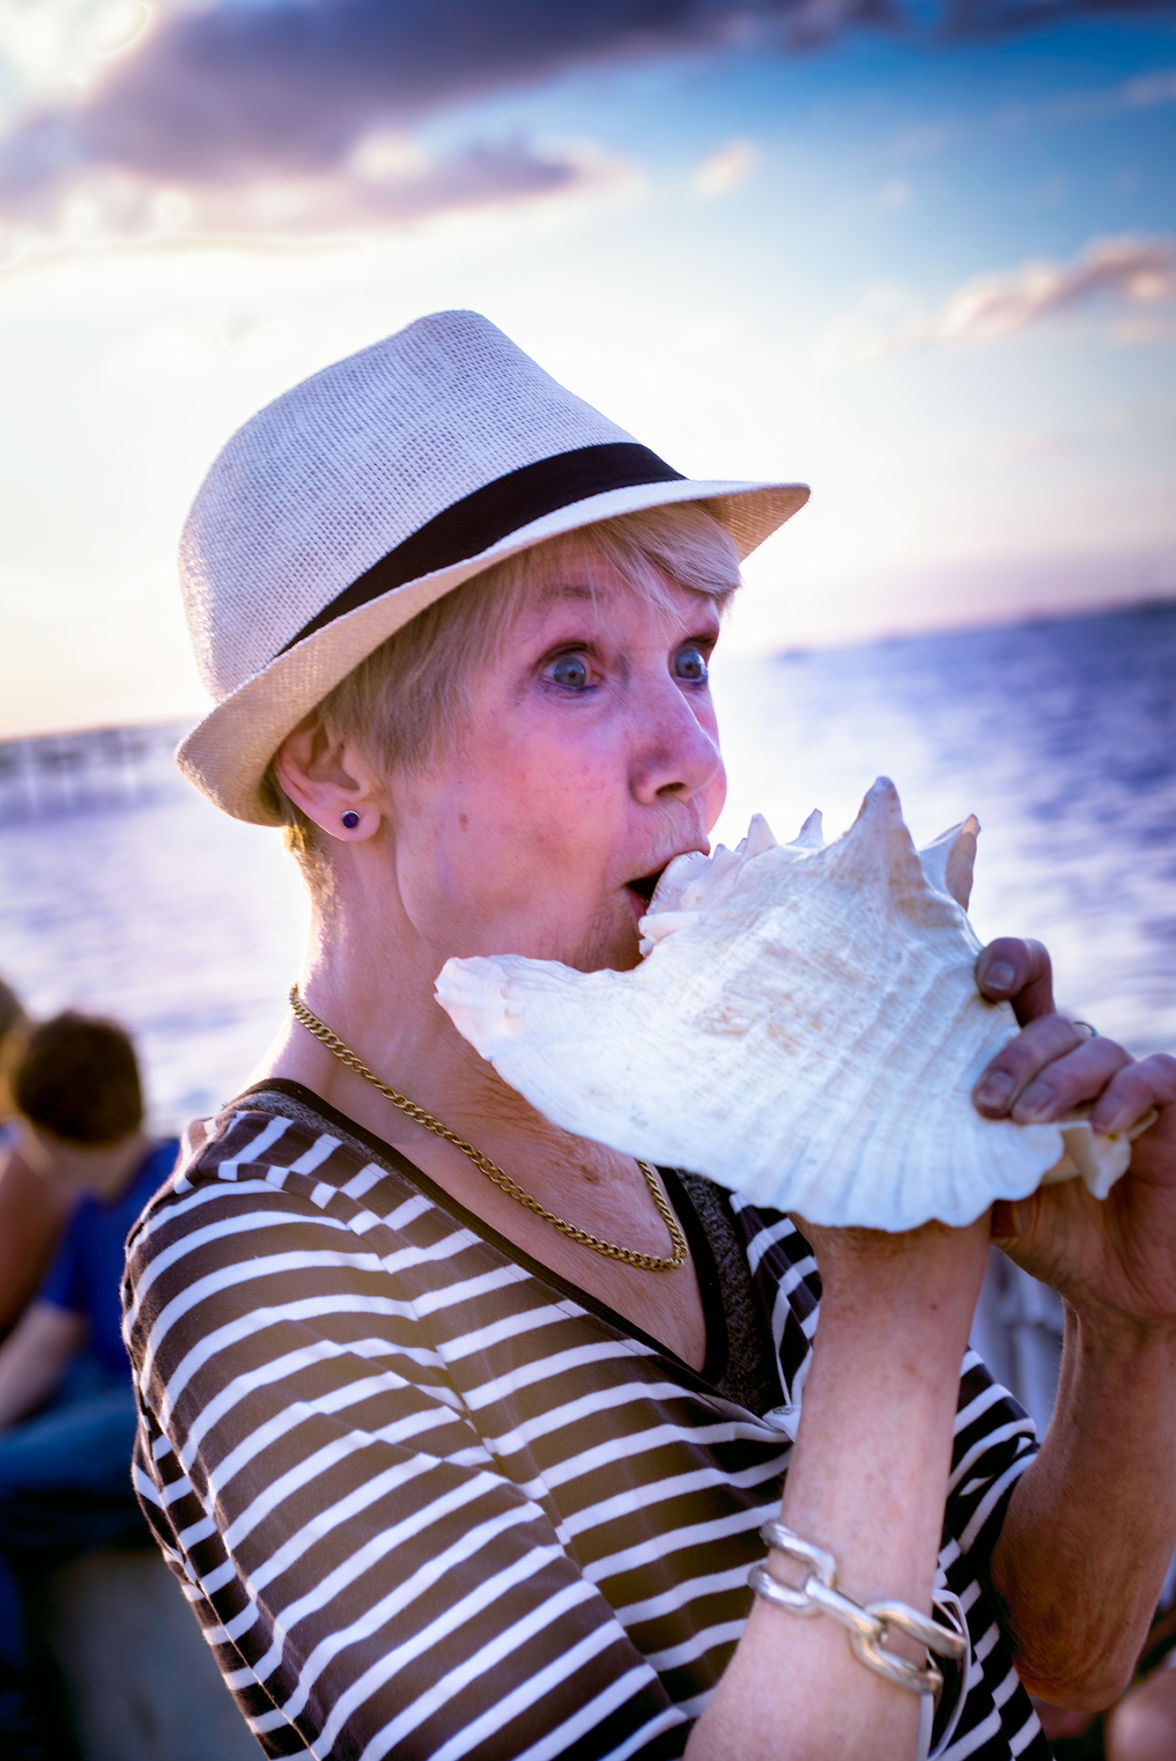 New Year's Eve Conch blow tradition held at Gilchrist Park